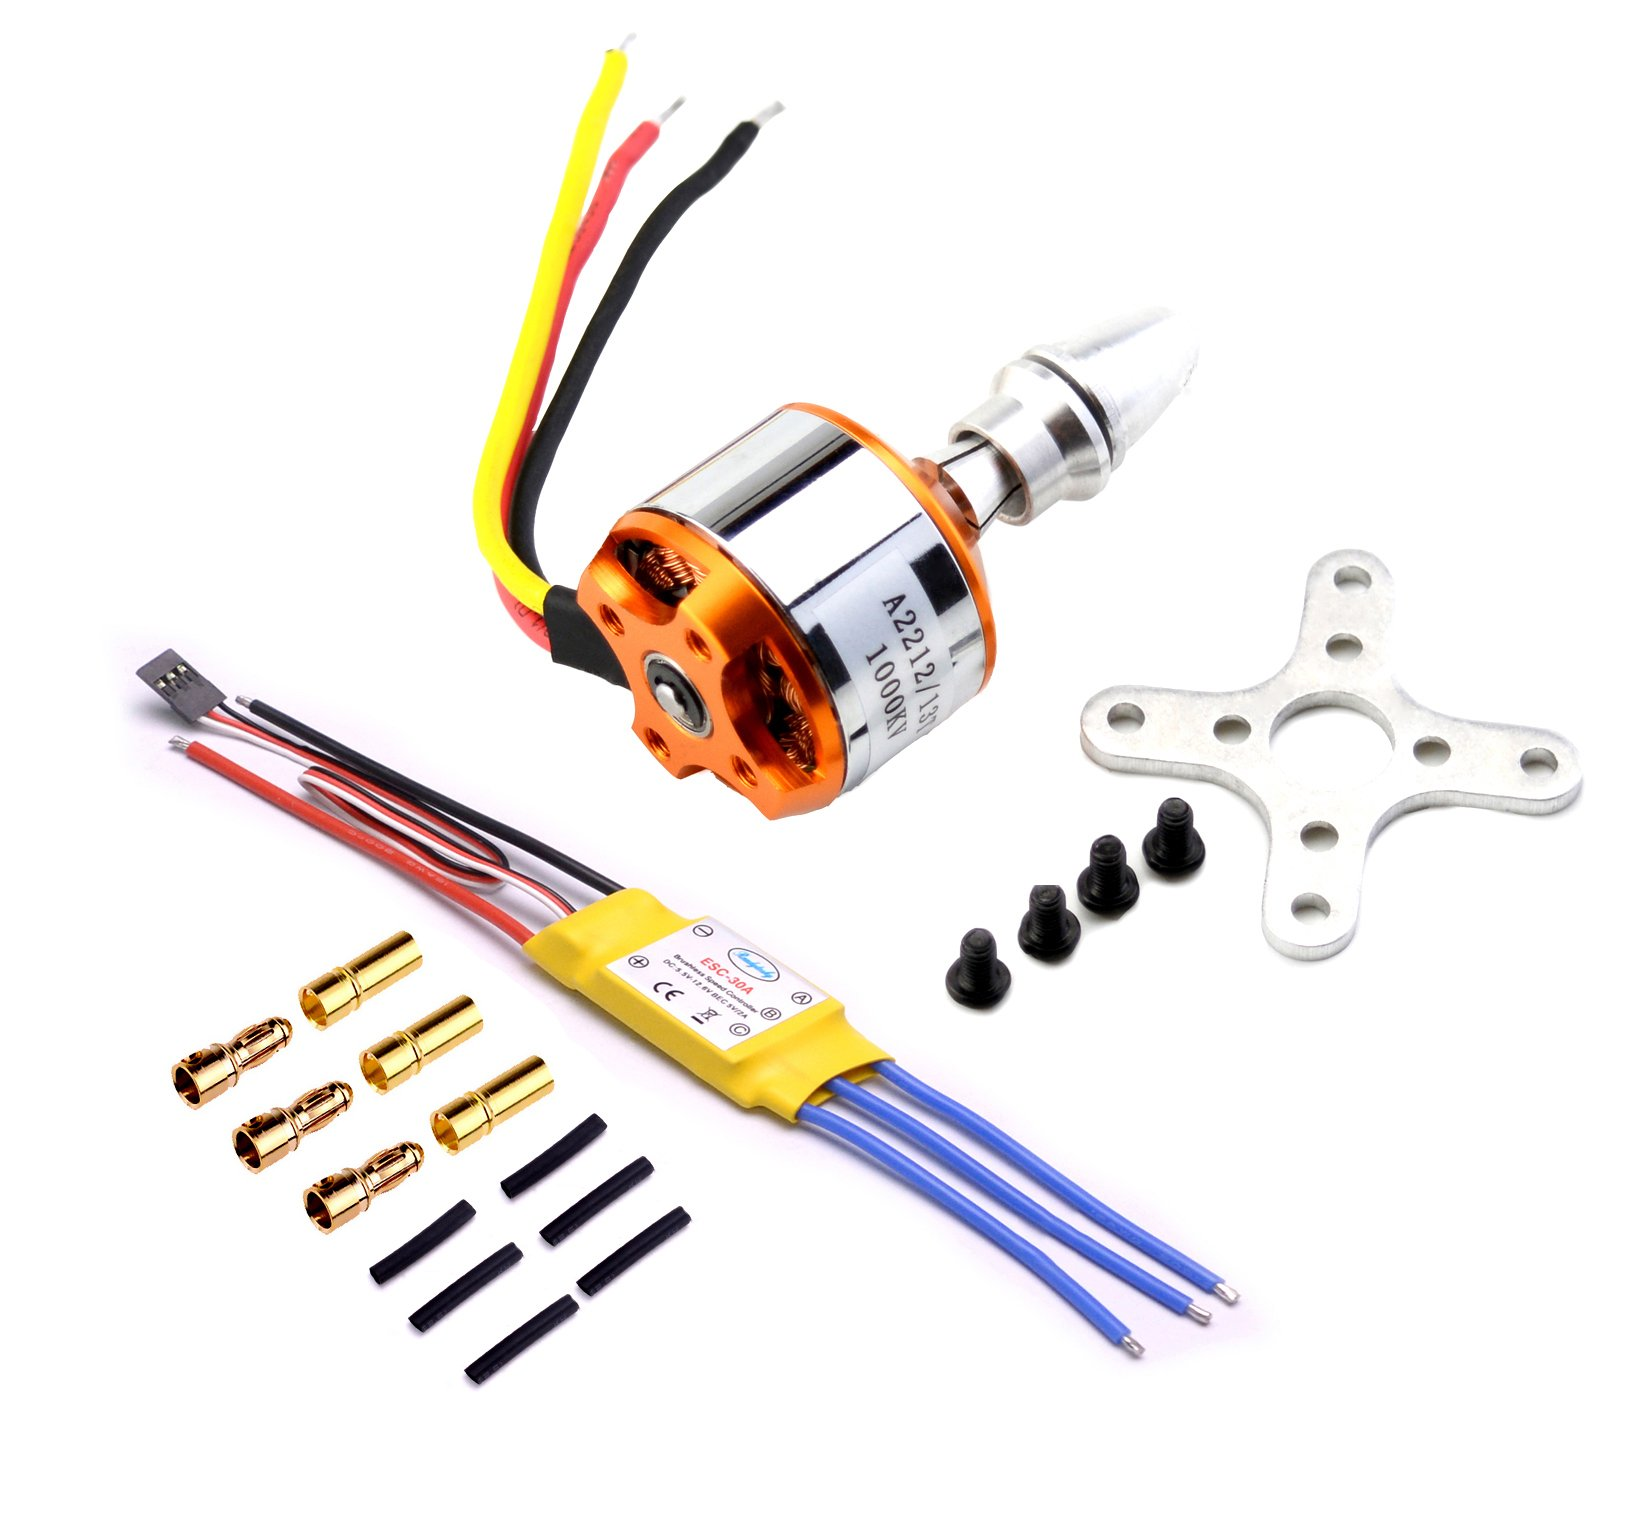 Cheap A2212 Brushless Motor, find A2212 Brushless Motor deals on